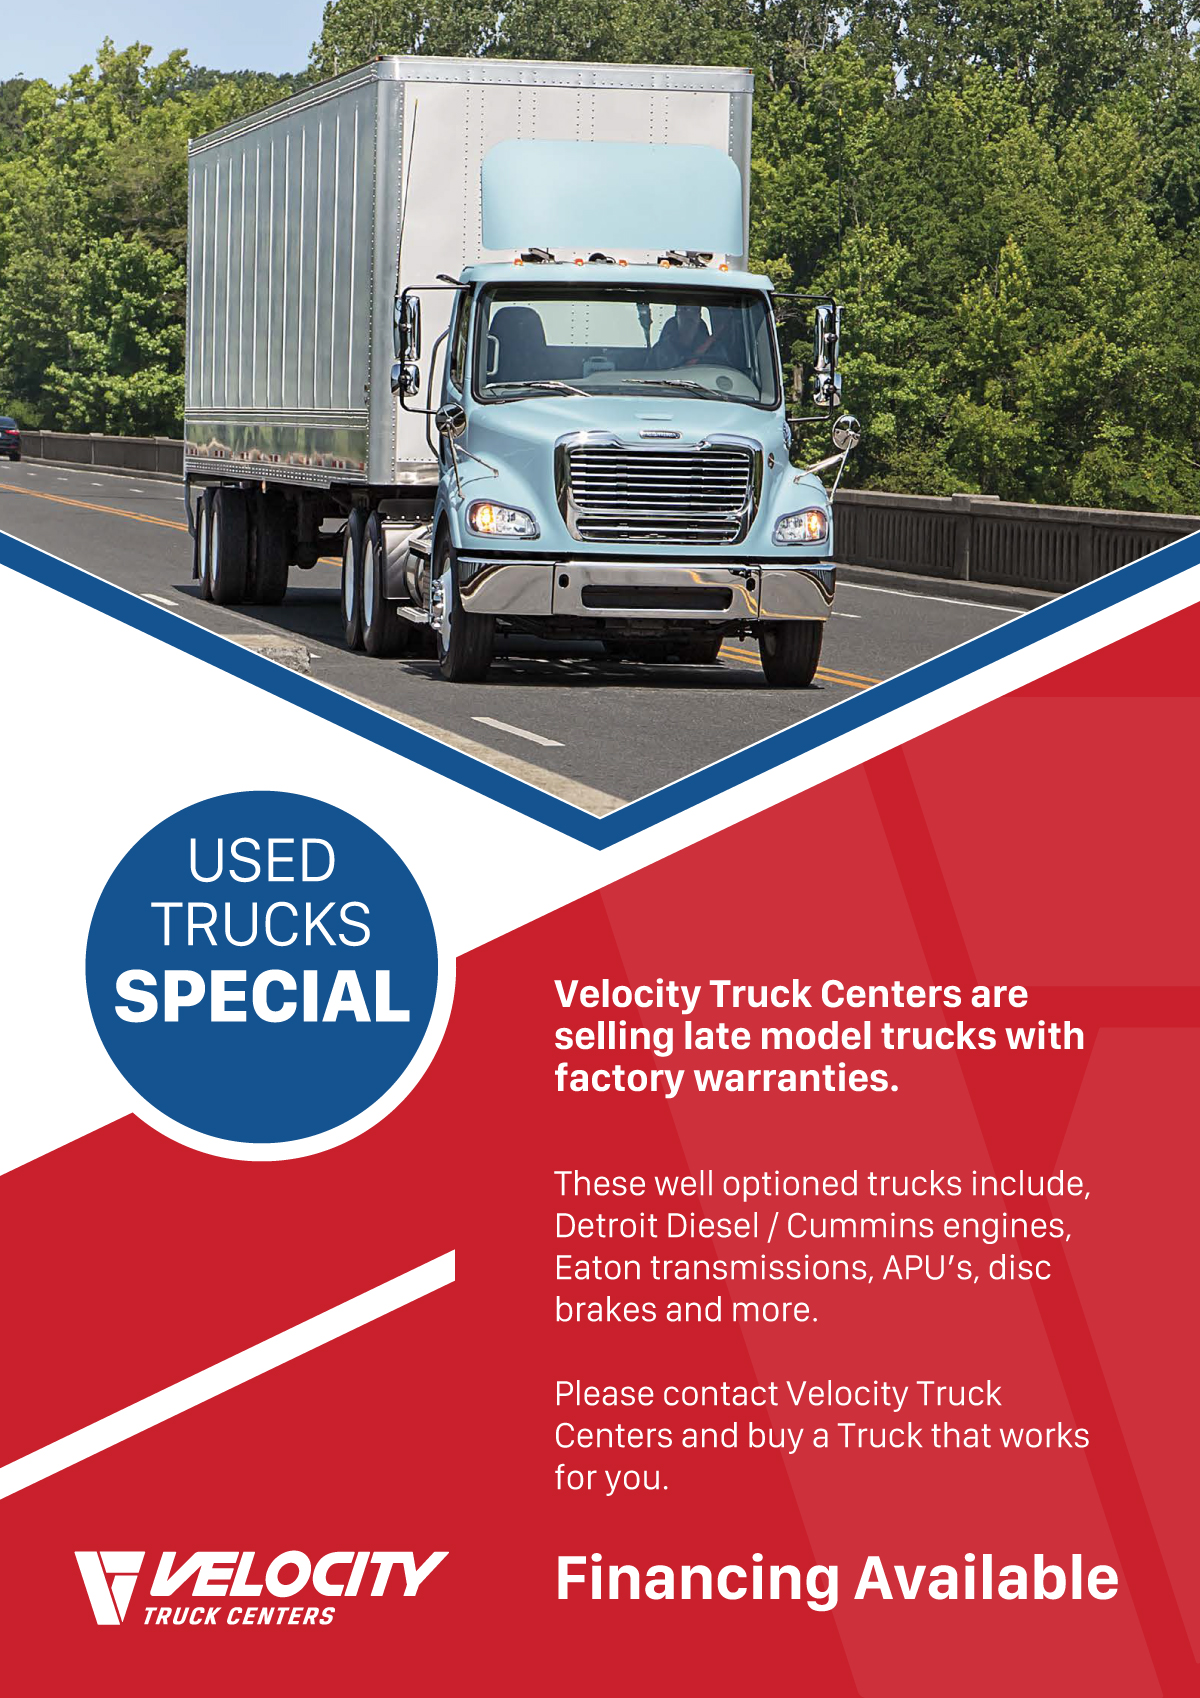 Select Truck - Heavy Duty Used Trucks Inventory at